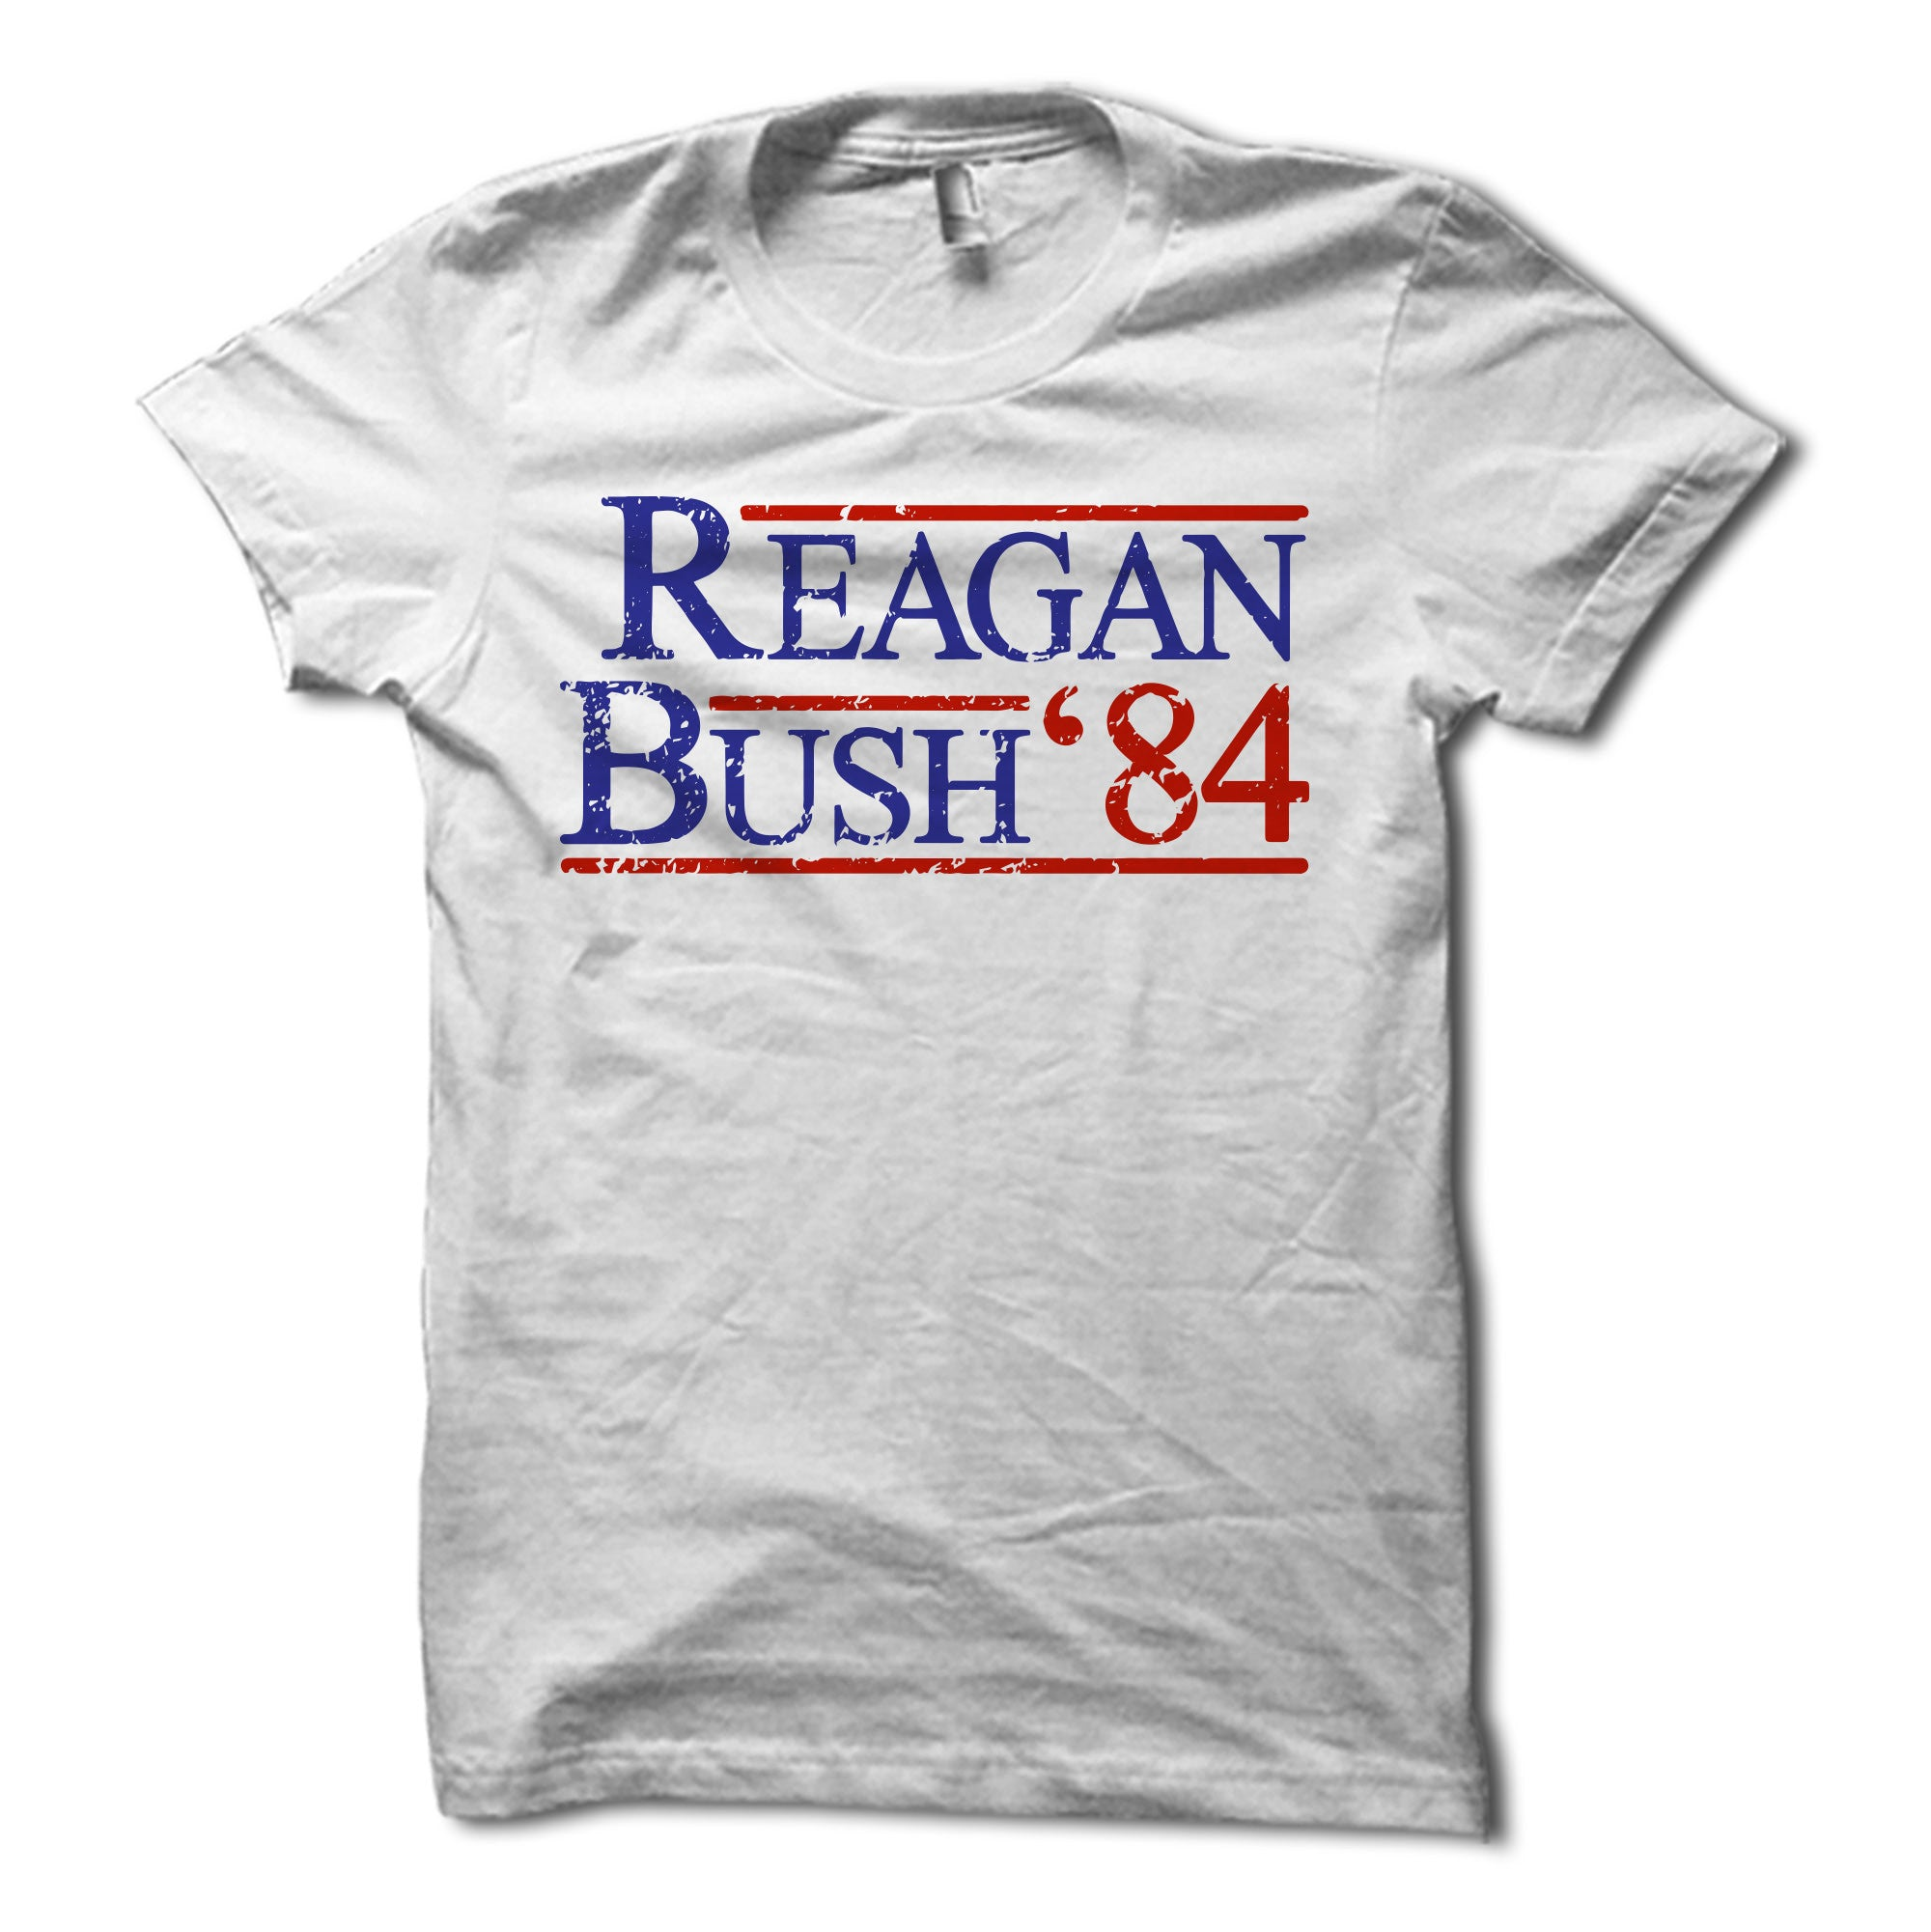 a595a730d Reagan Bush 84 Shirt – Merica Supply Co.